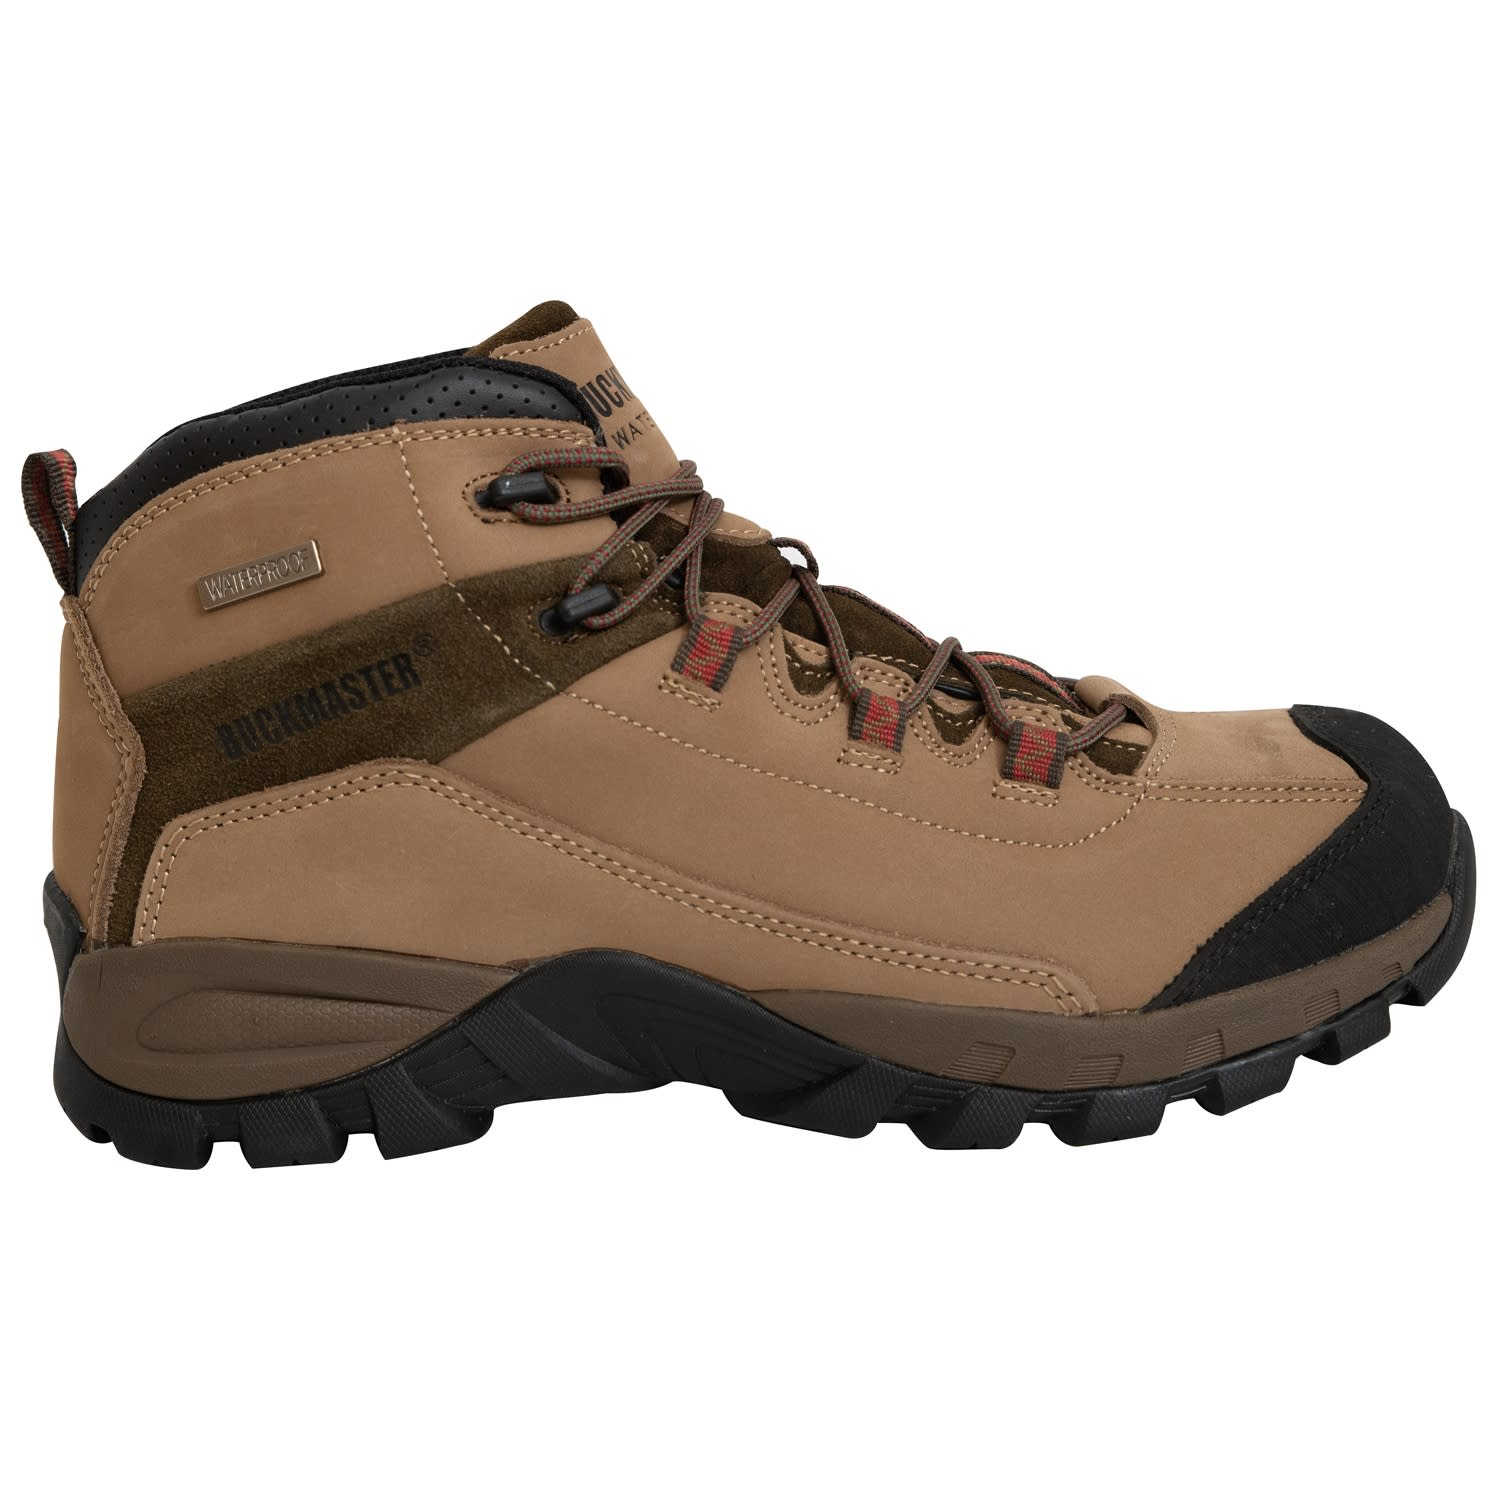 Buckmaster Black Ledge Mid